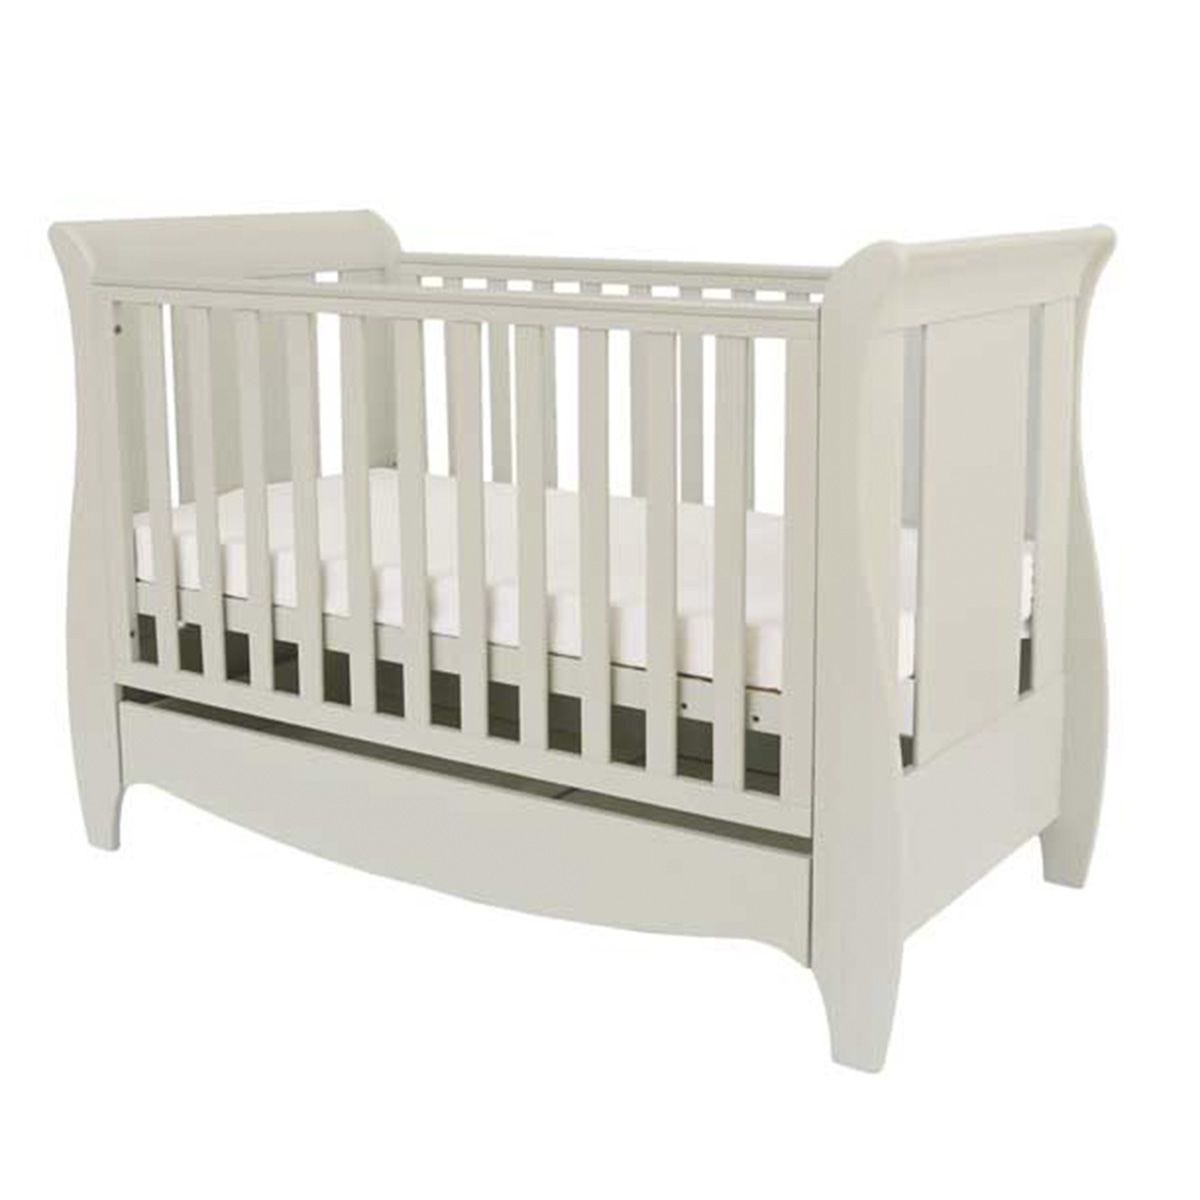 Tutti Bambini Roma Mini Sleigh Cot Bed with Drawer - Linen